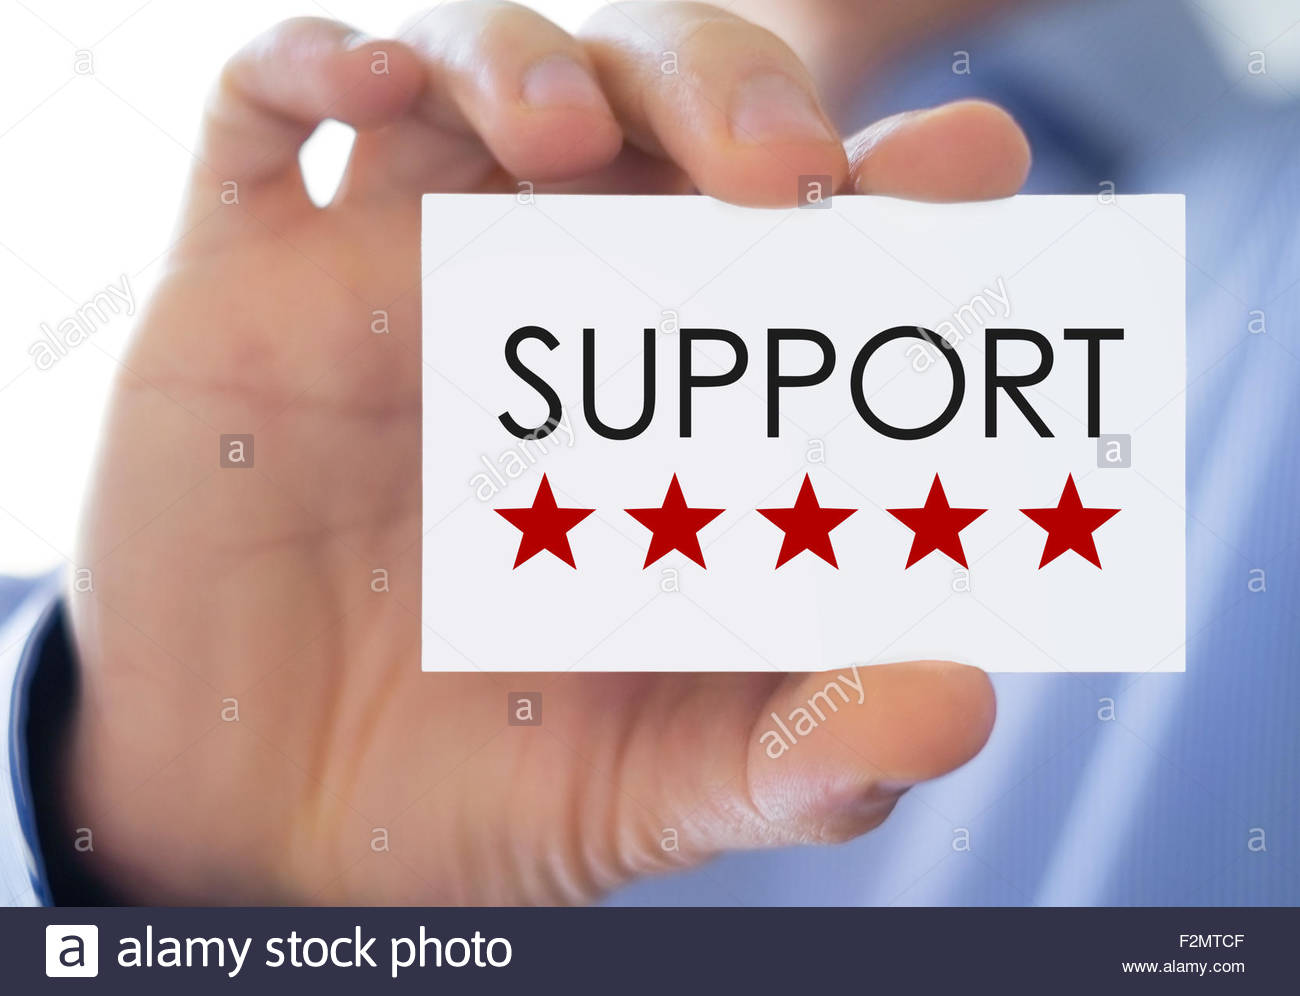 Support - business card - Stock Image